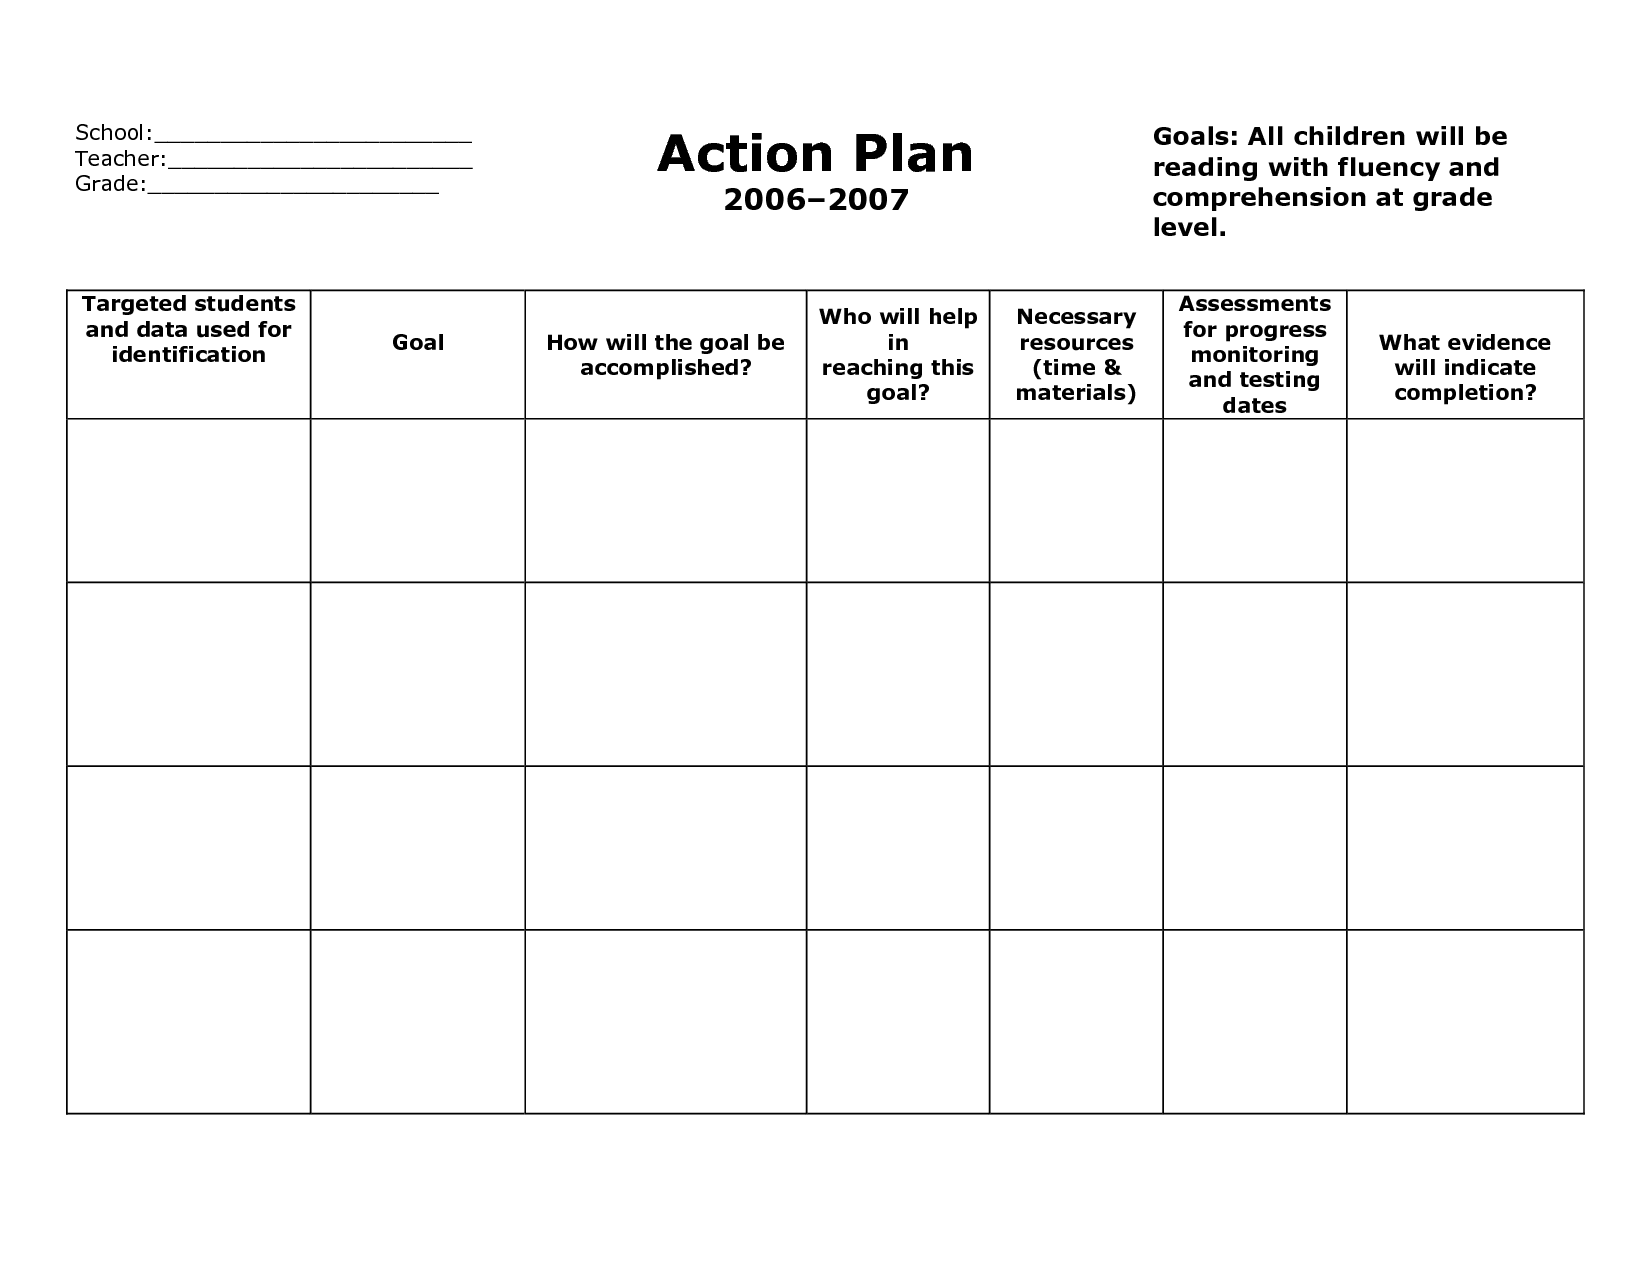 Elegant Action Plan Template Action Plan Format V5FCLyv5 Idea Action Plan Templates